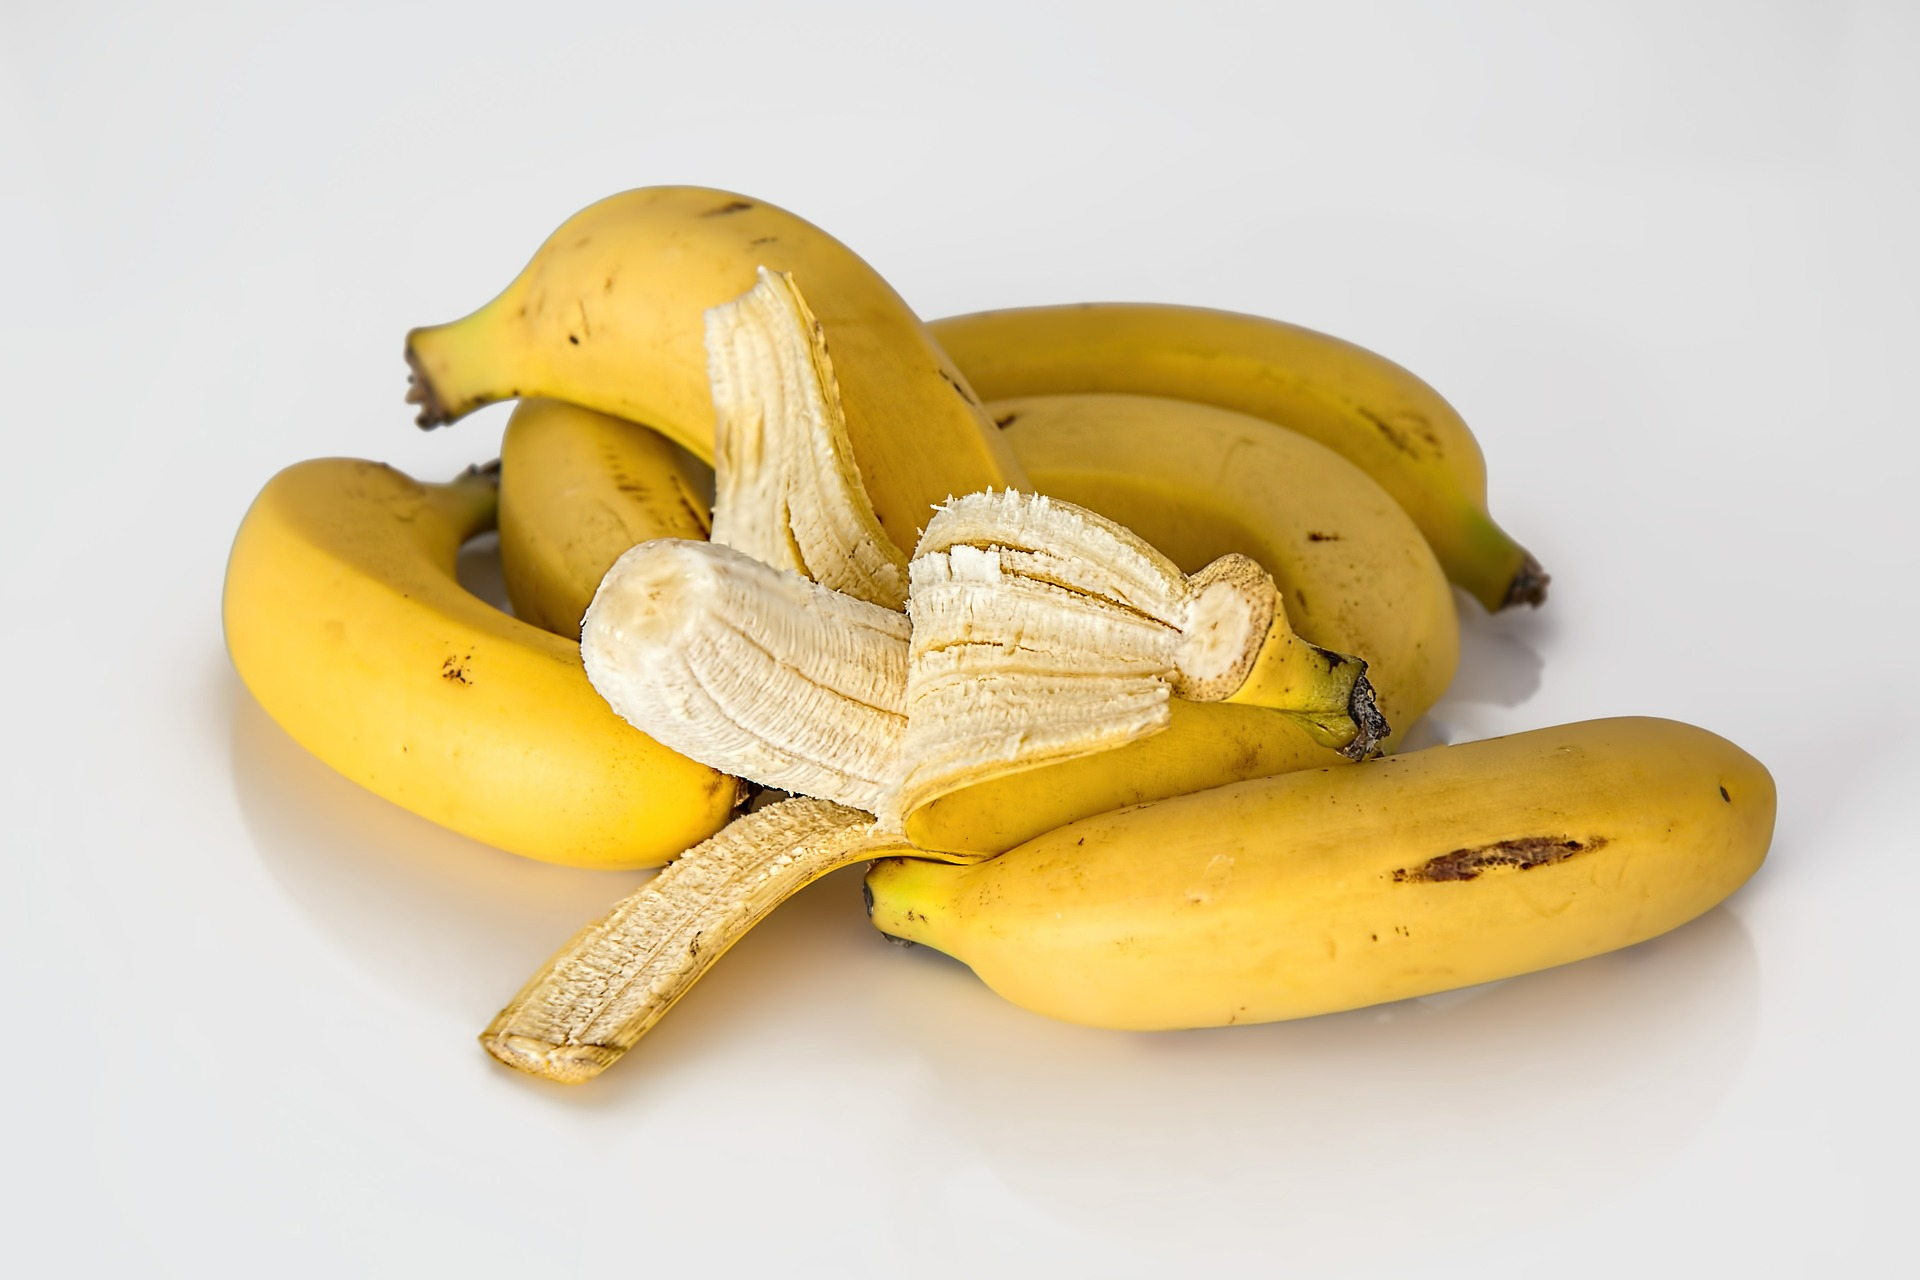 several bunches of bananas bunched together with one banana partly open in the middle